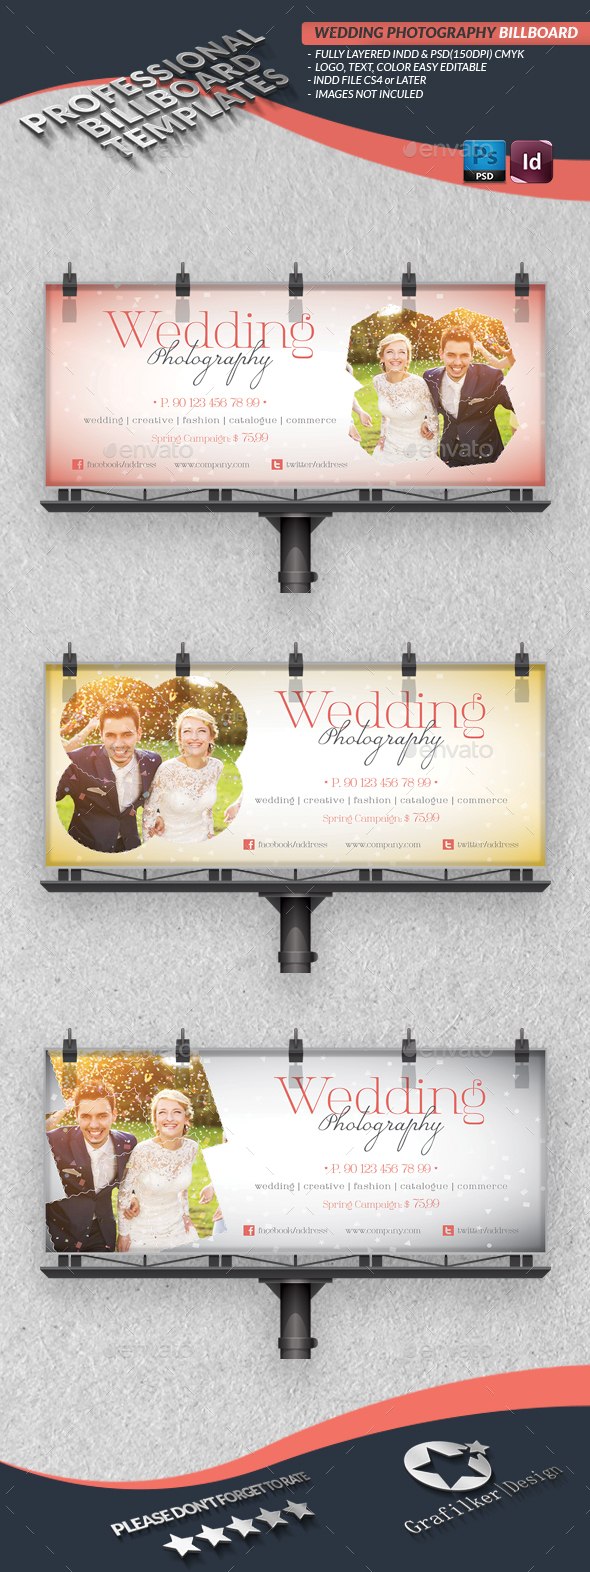 Wedding Photography Billboard Template - Signage Print Templates